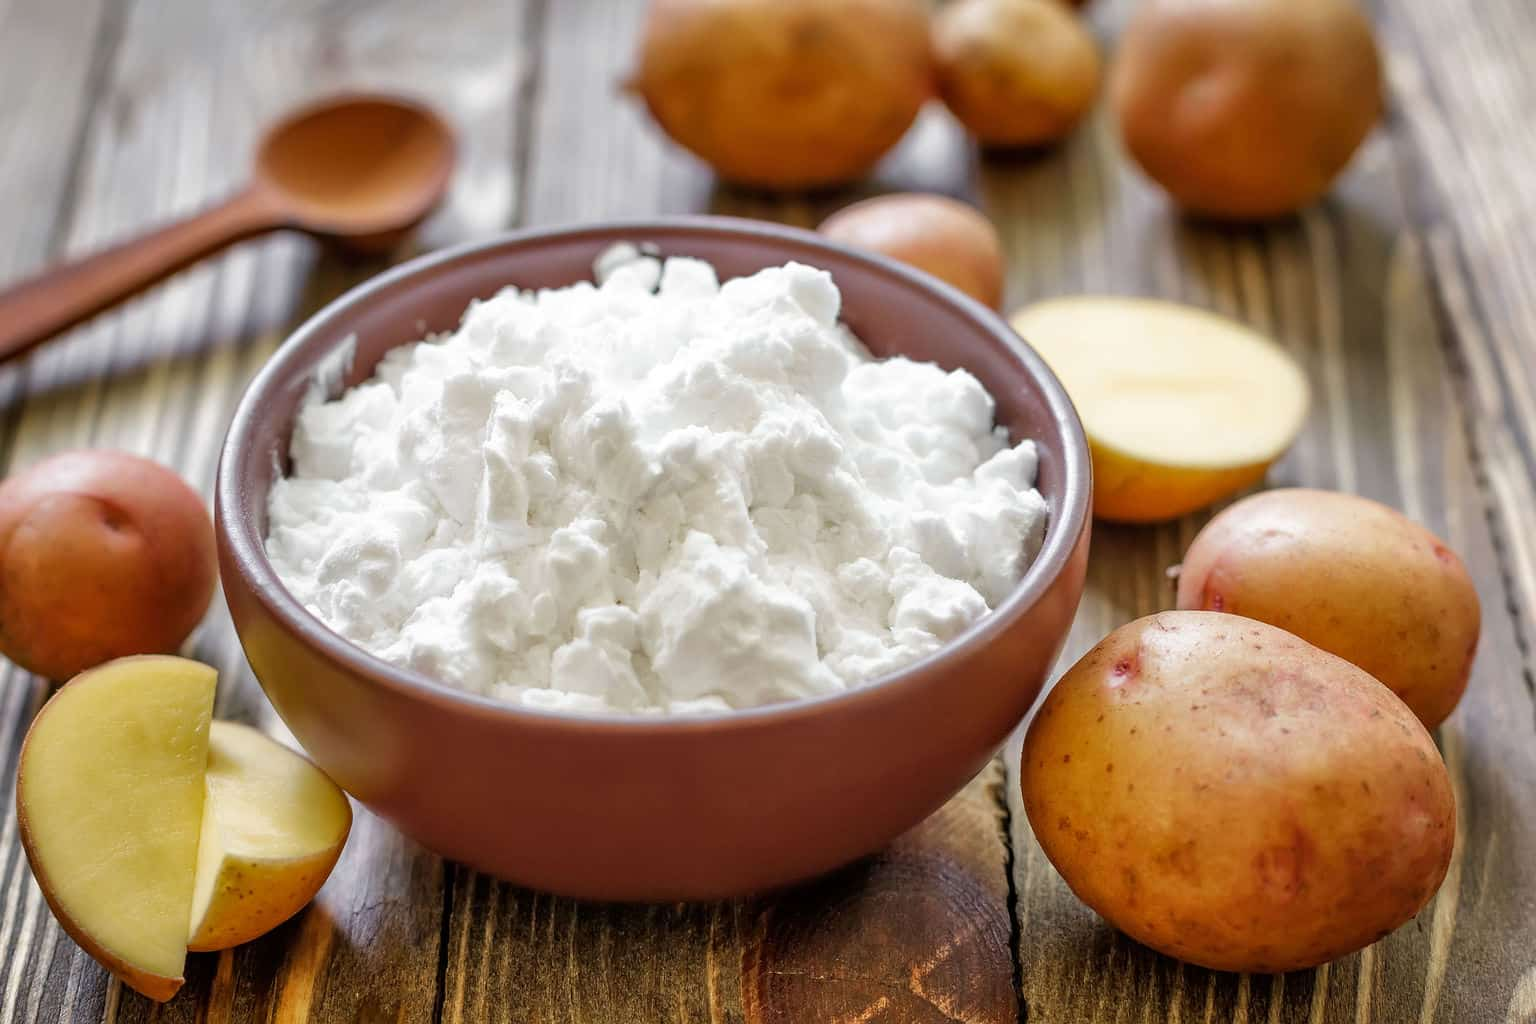 Sugar or starch, which is better for you?